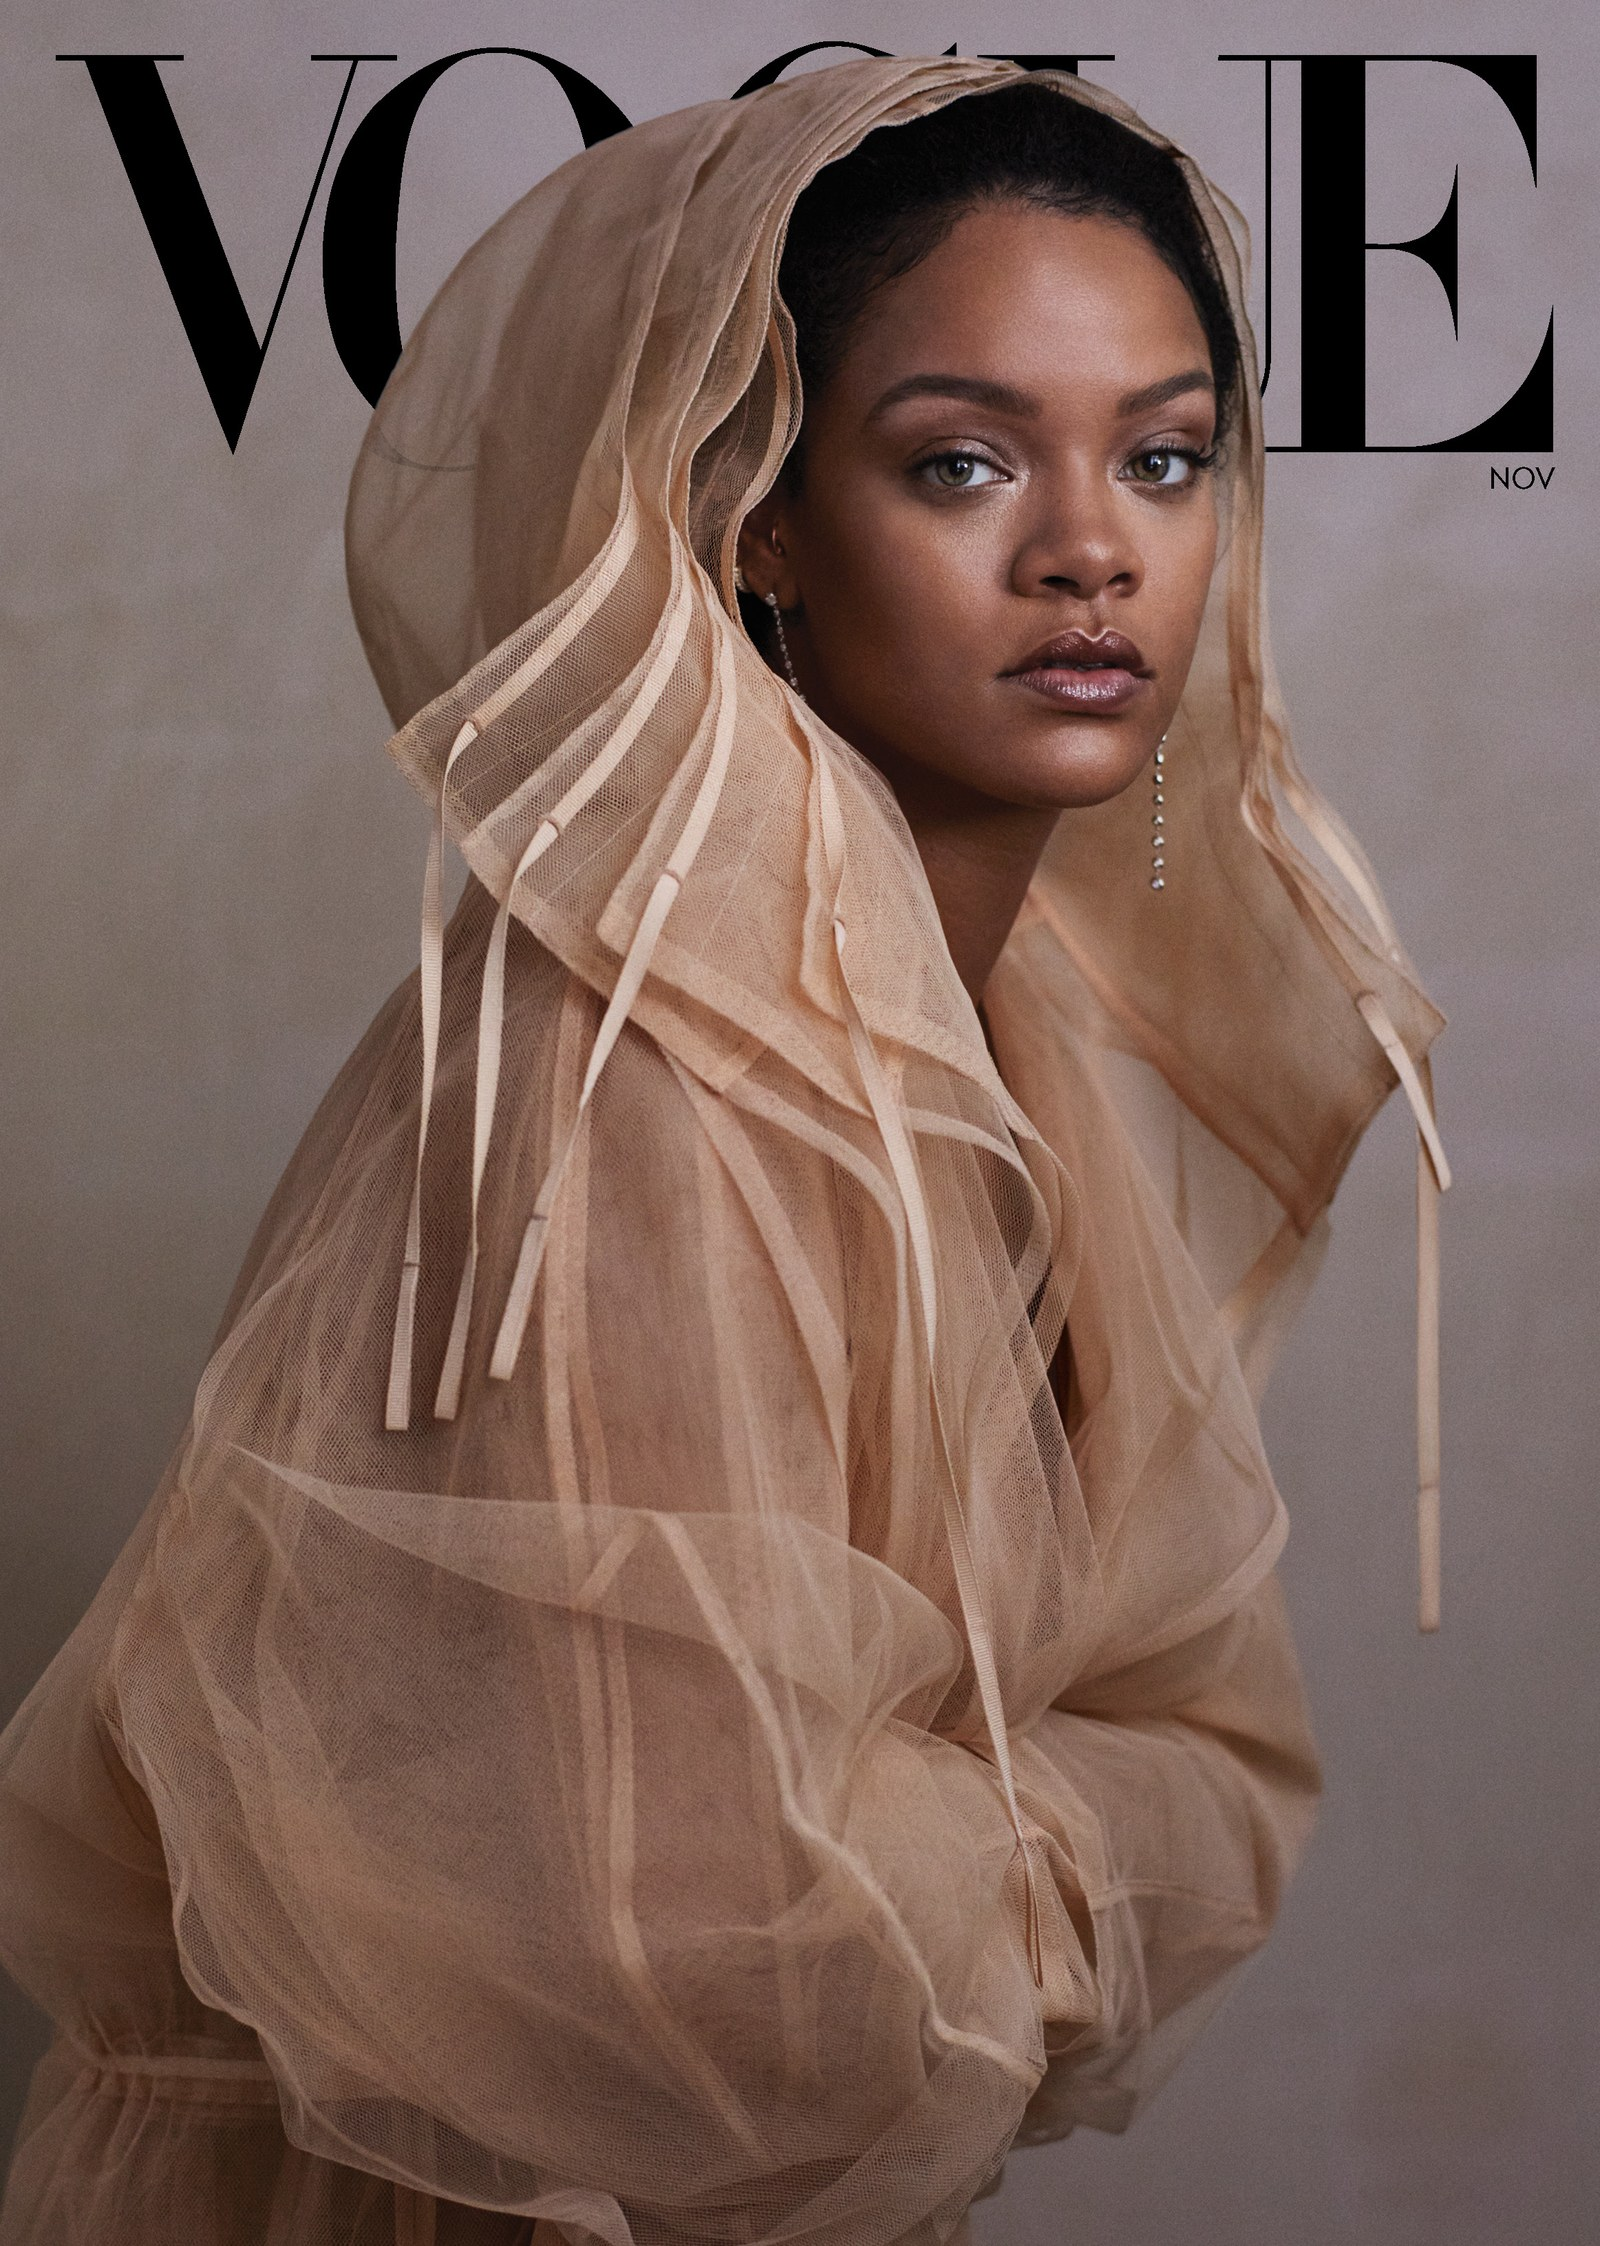 Rihanna for Vogue US November 2019